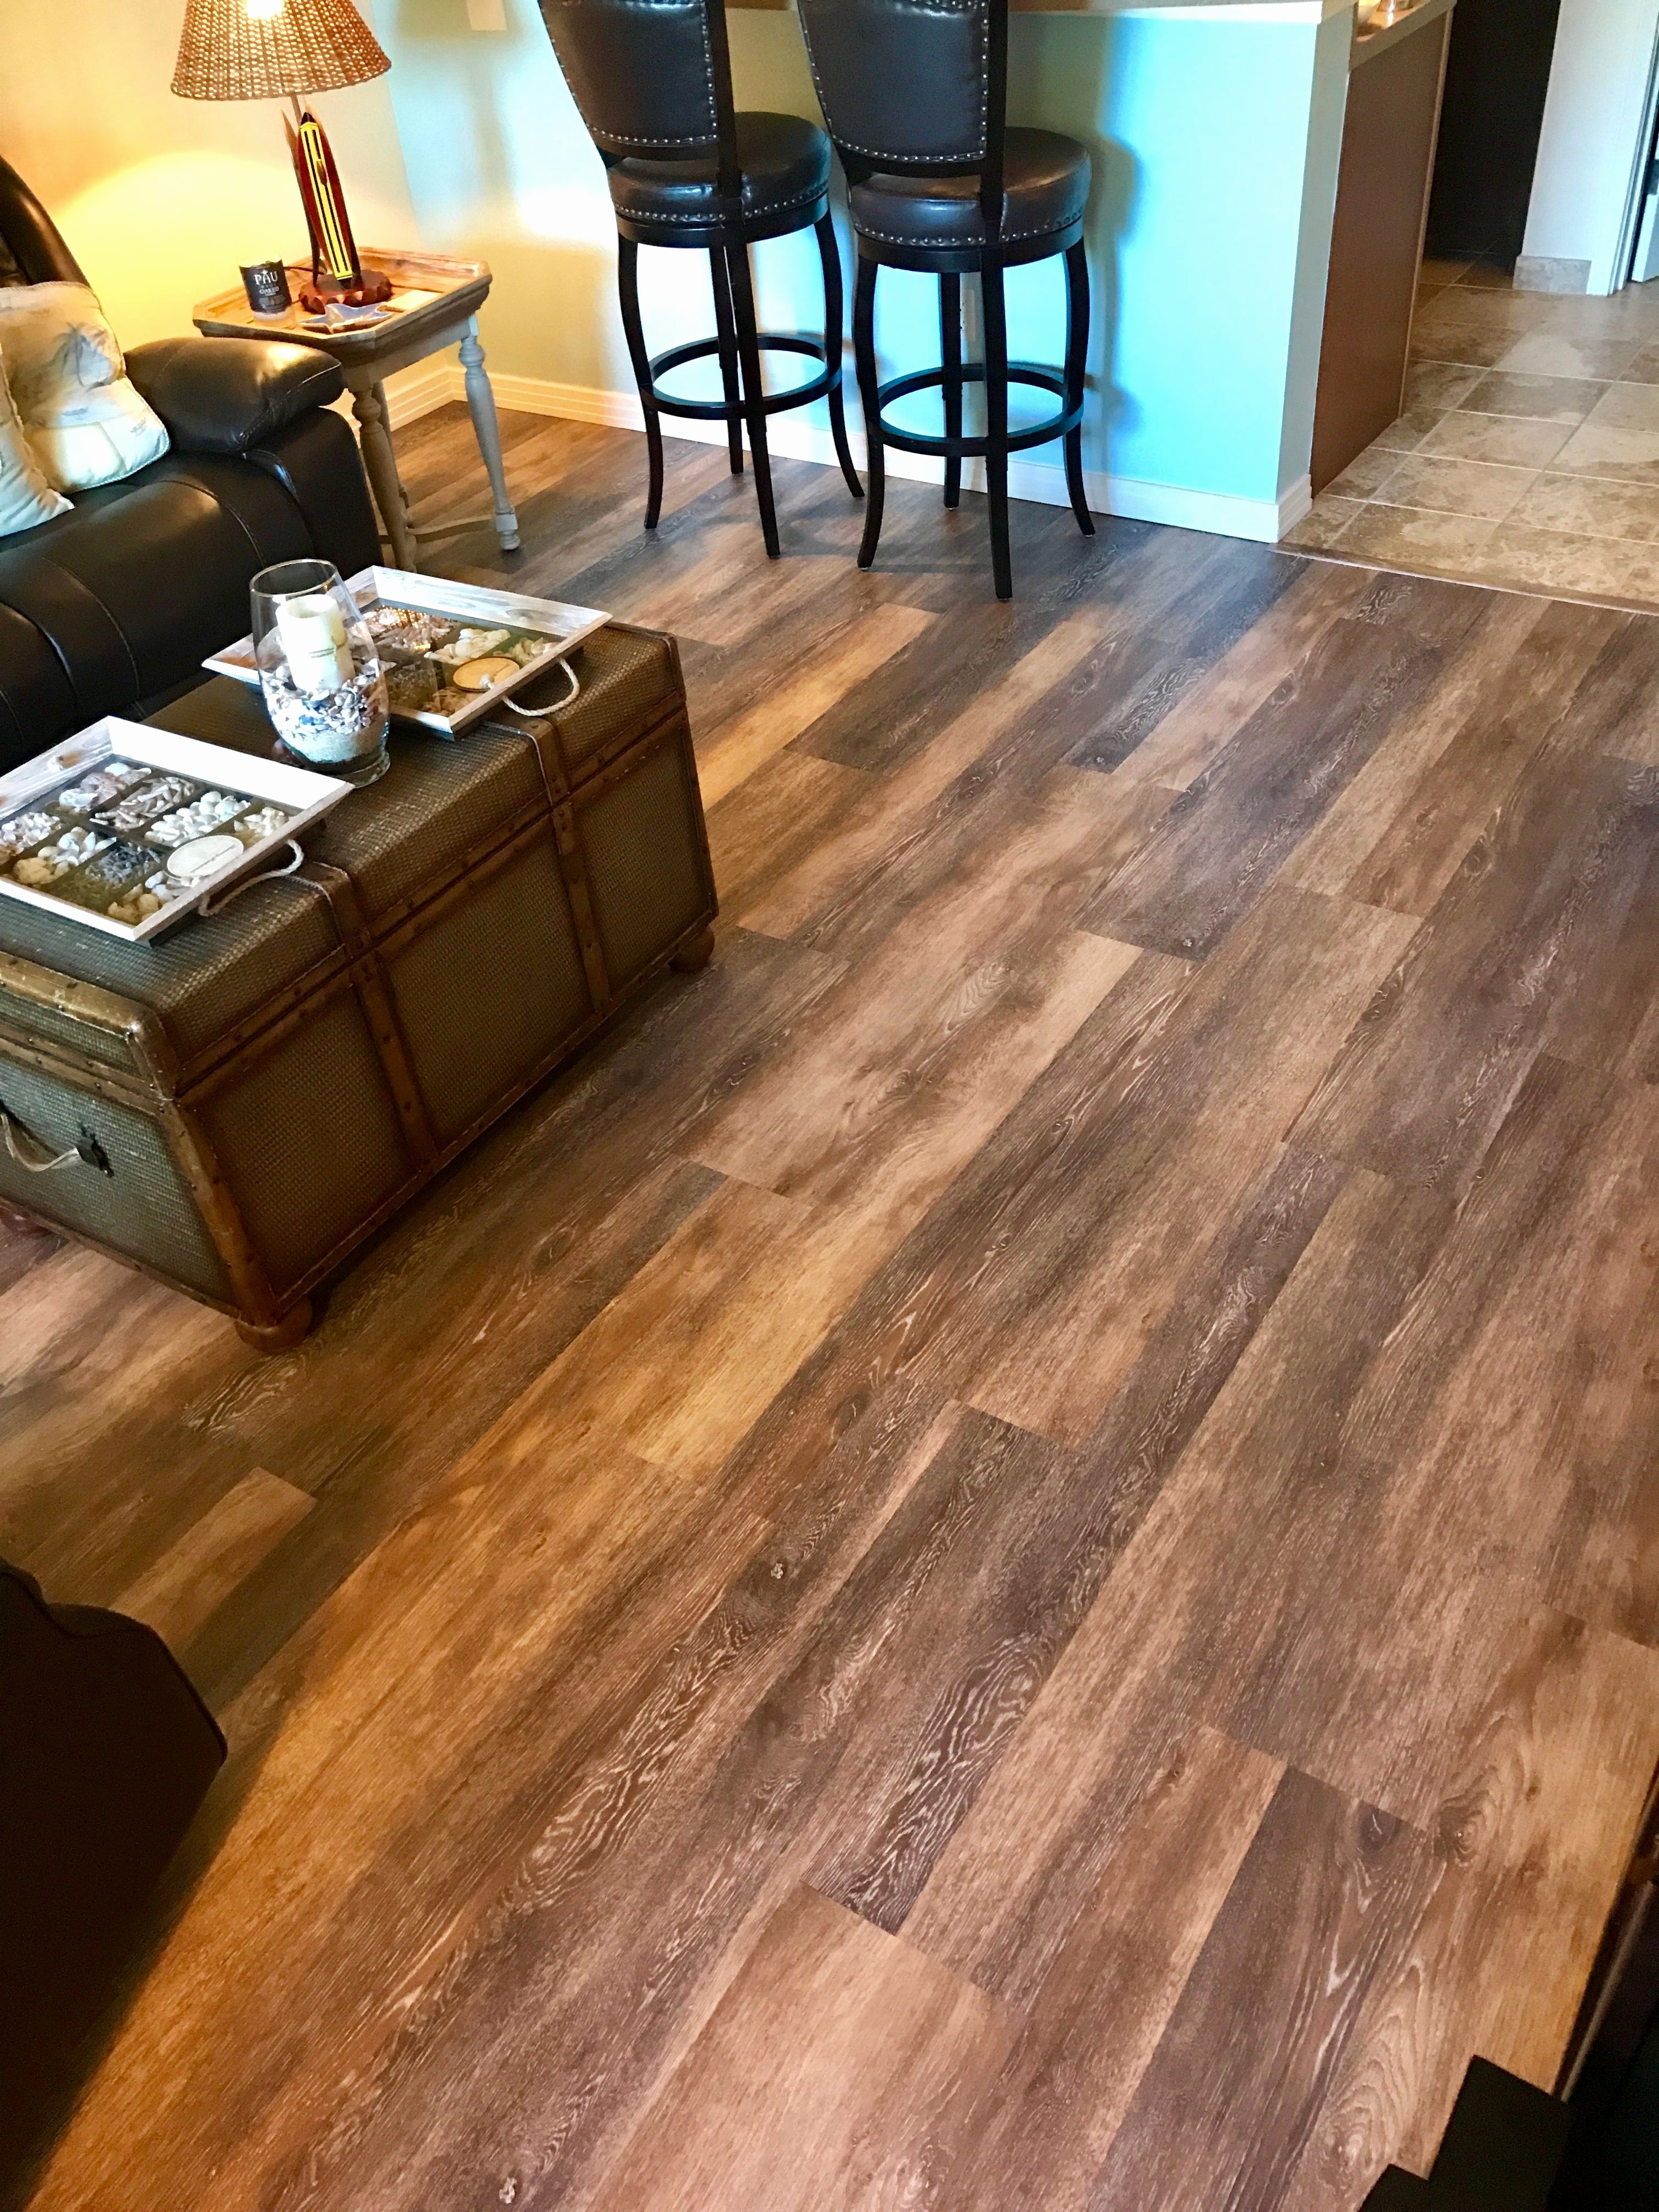 how to refinish hardwood floors lowes of 17 inspirational lowes carpet installation photos dizpos com for lowes carpet installation inspirational 50 inspirational vinyl wood flooring lowes pics 50 s photos of 17